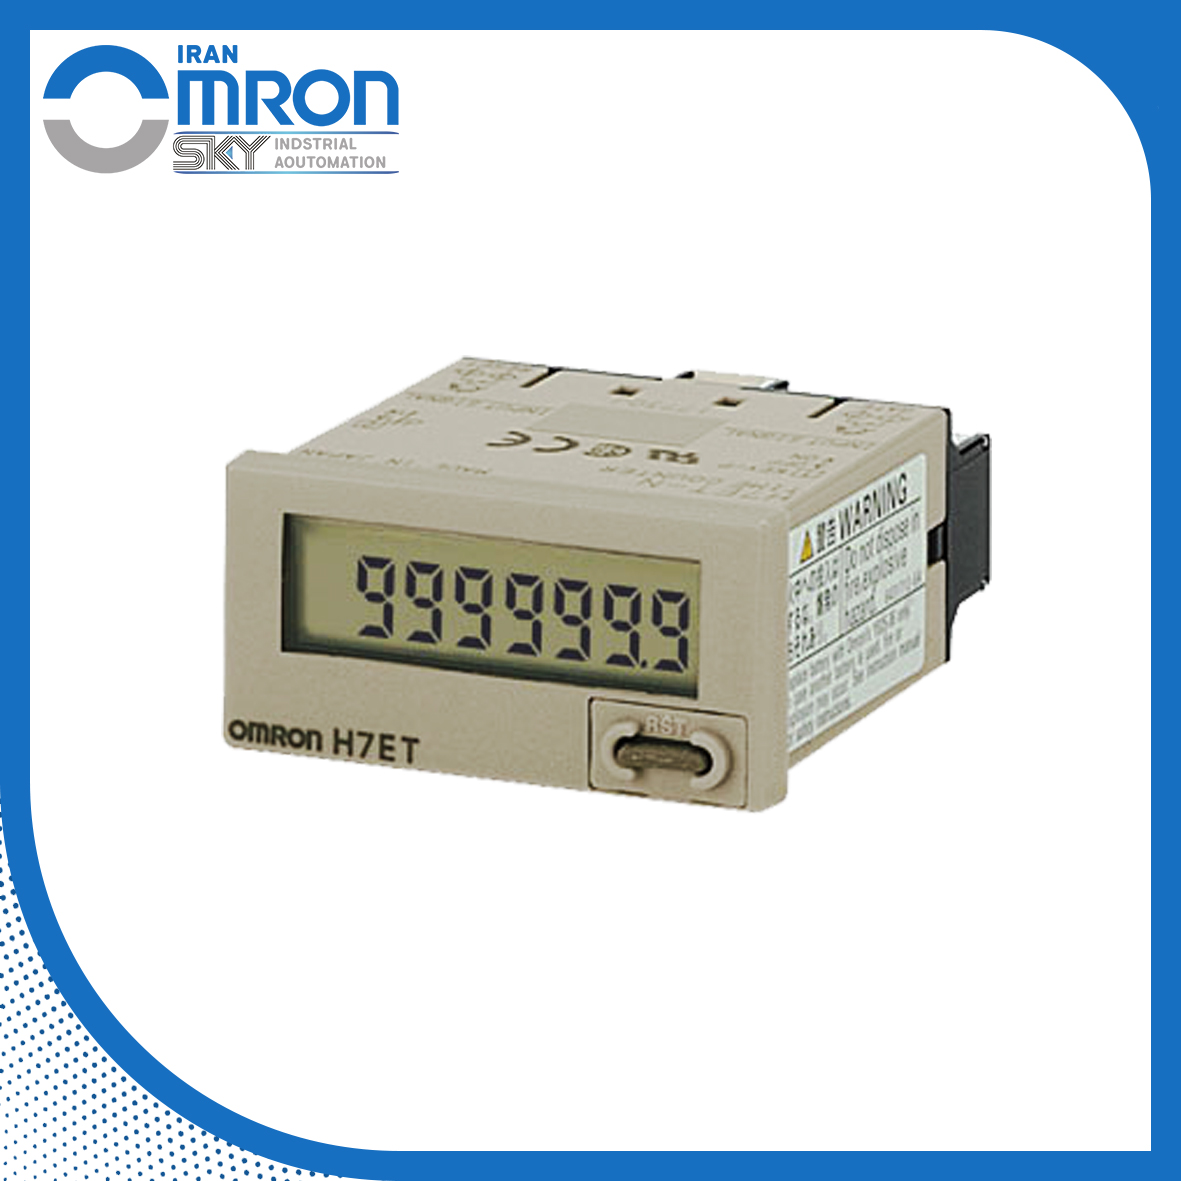 OMRON H7ET Counter شمارنده H7ET امرن